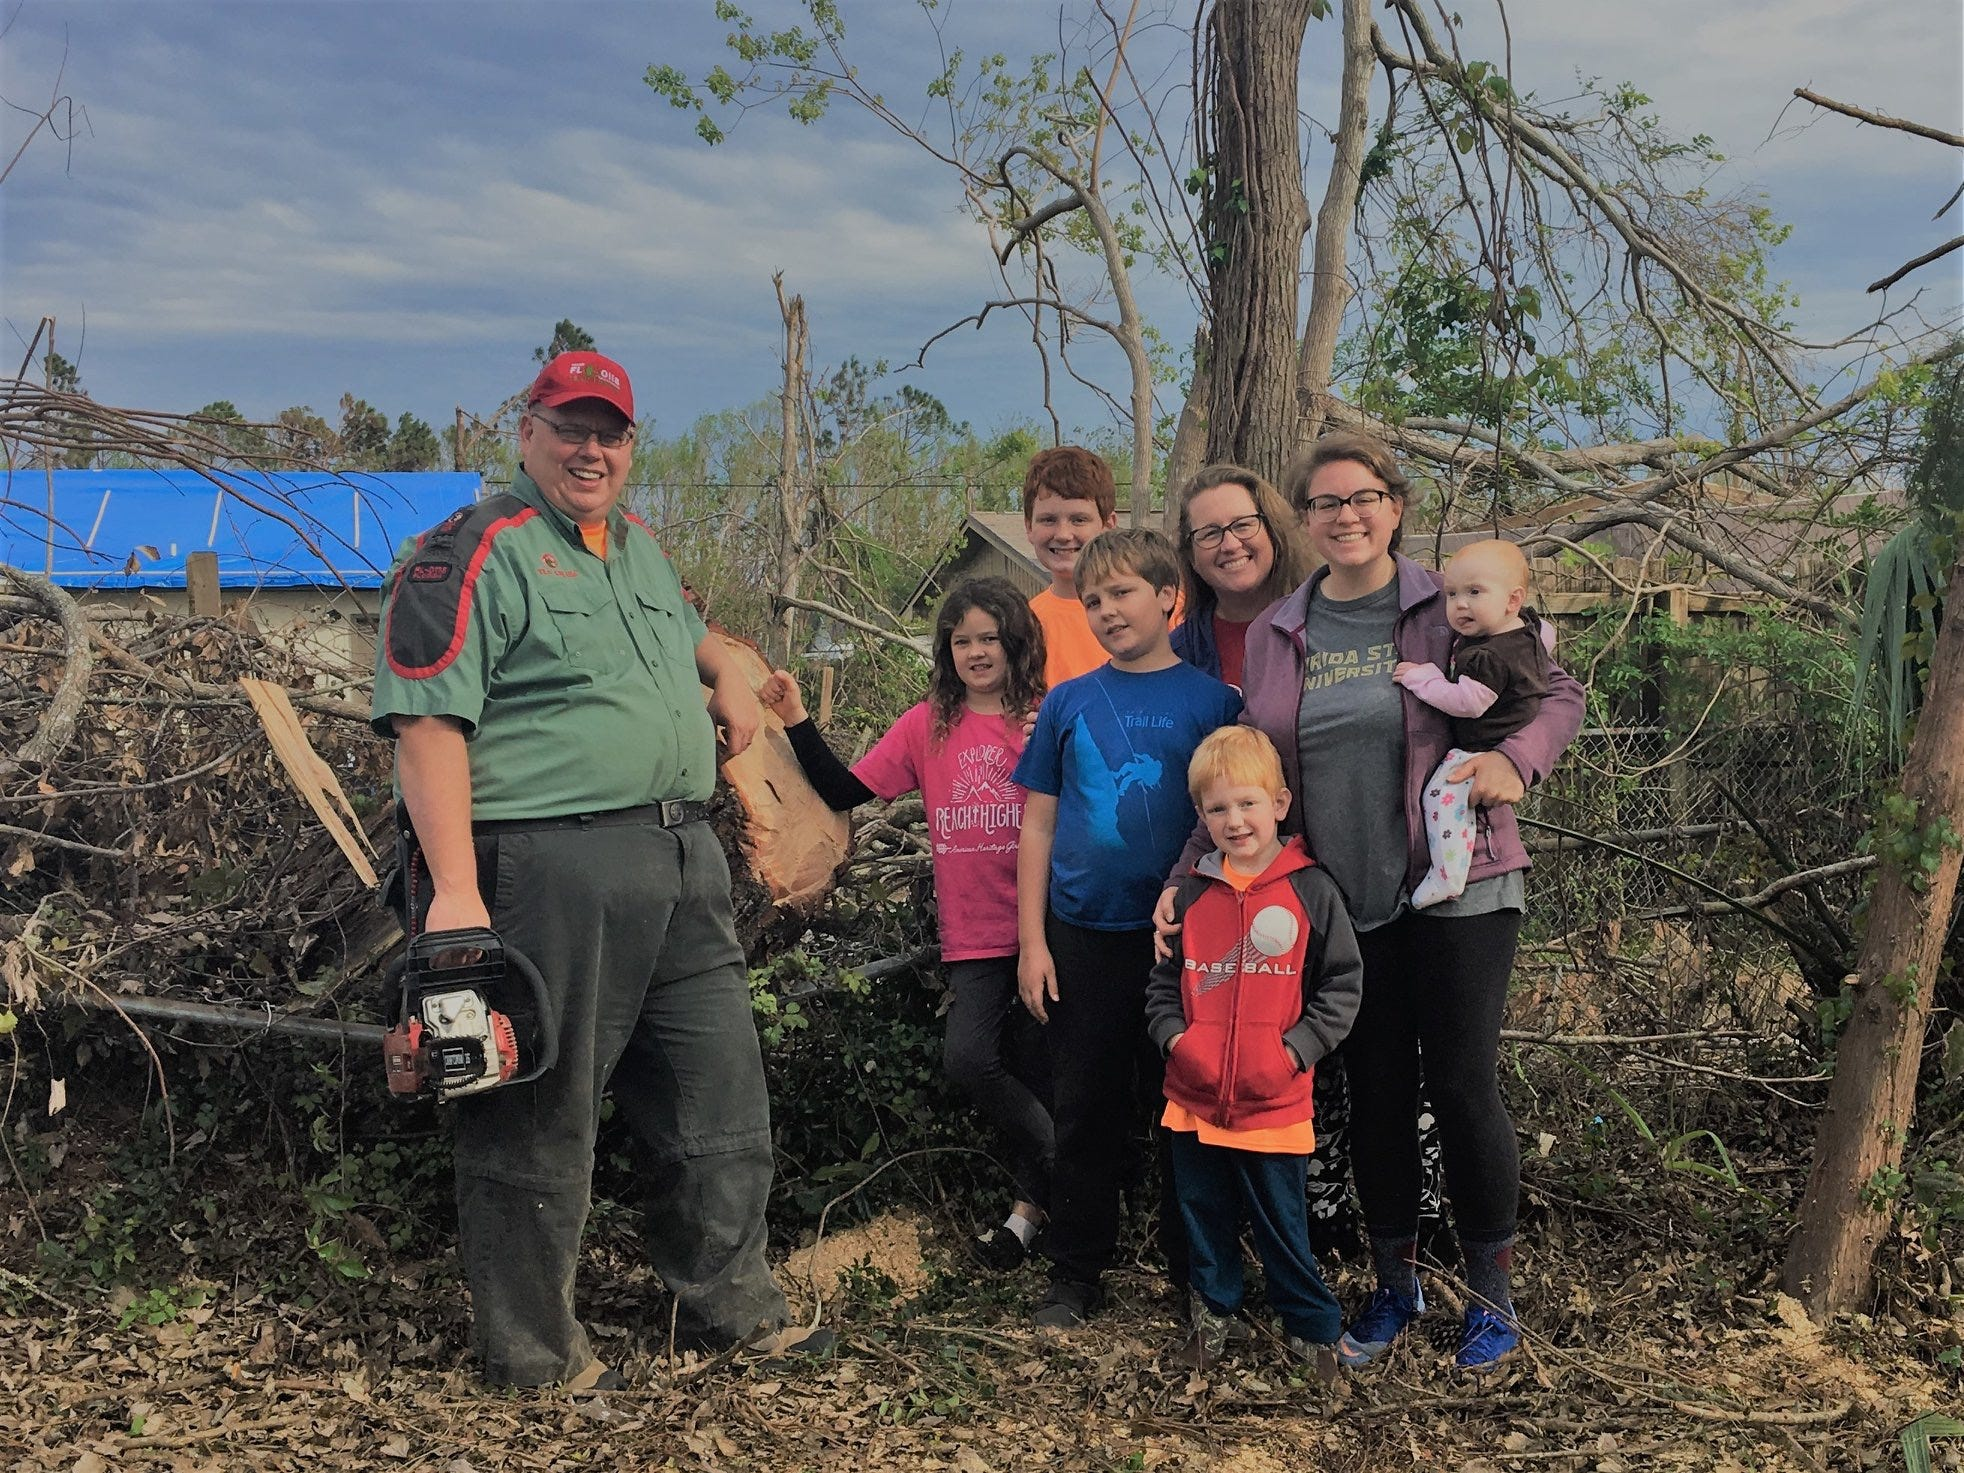 Melanie and Tony Gillespie and their six kids pose for a photo as they clean the yard of a Panama City resident after Hurricane Michael on Thanskgiving.